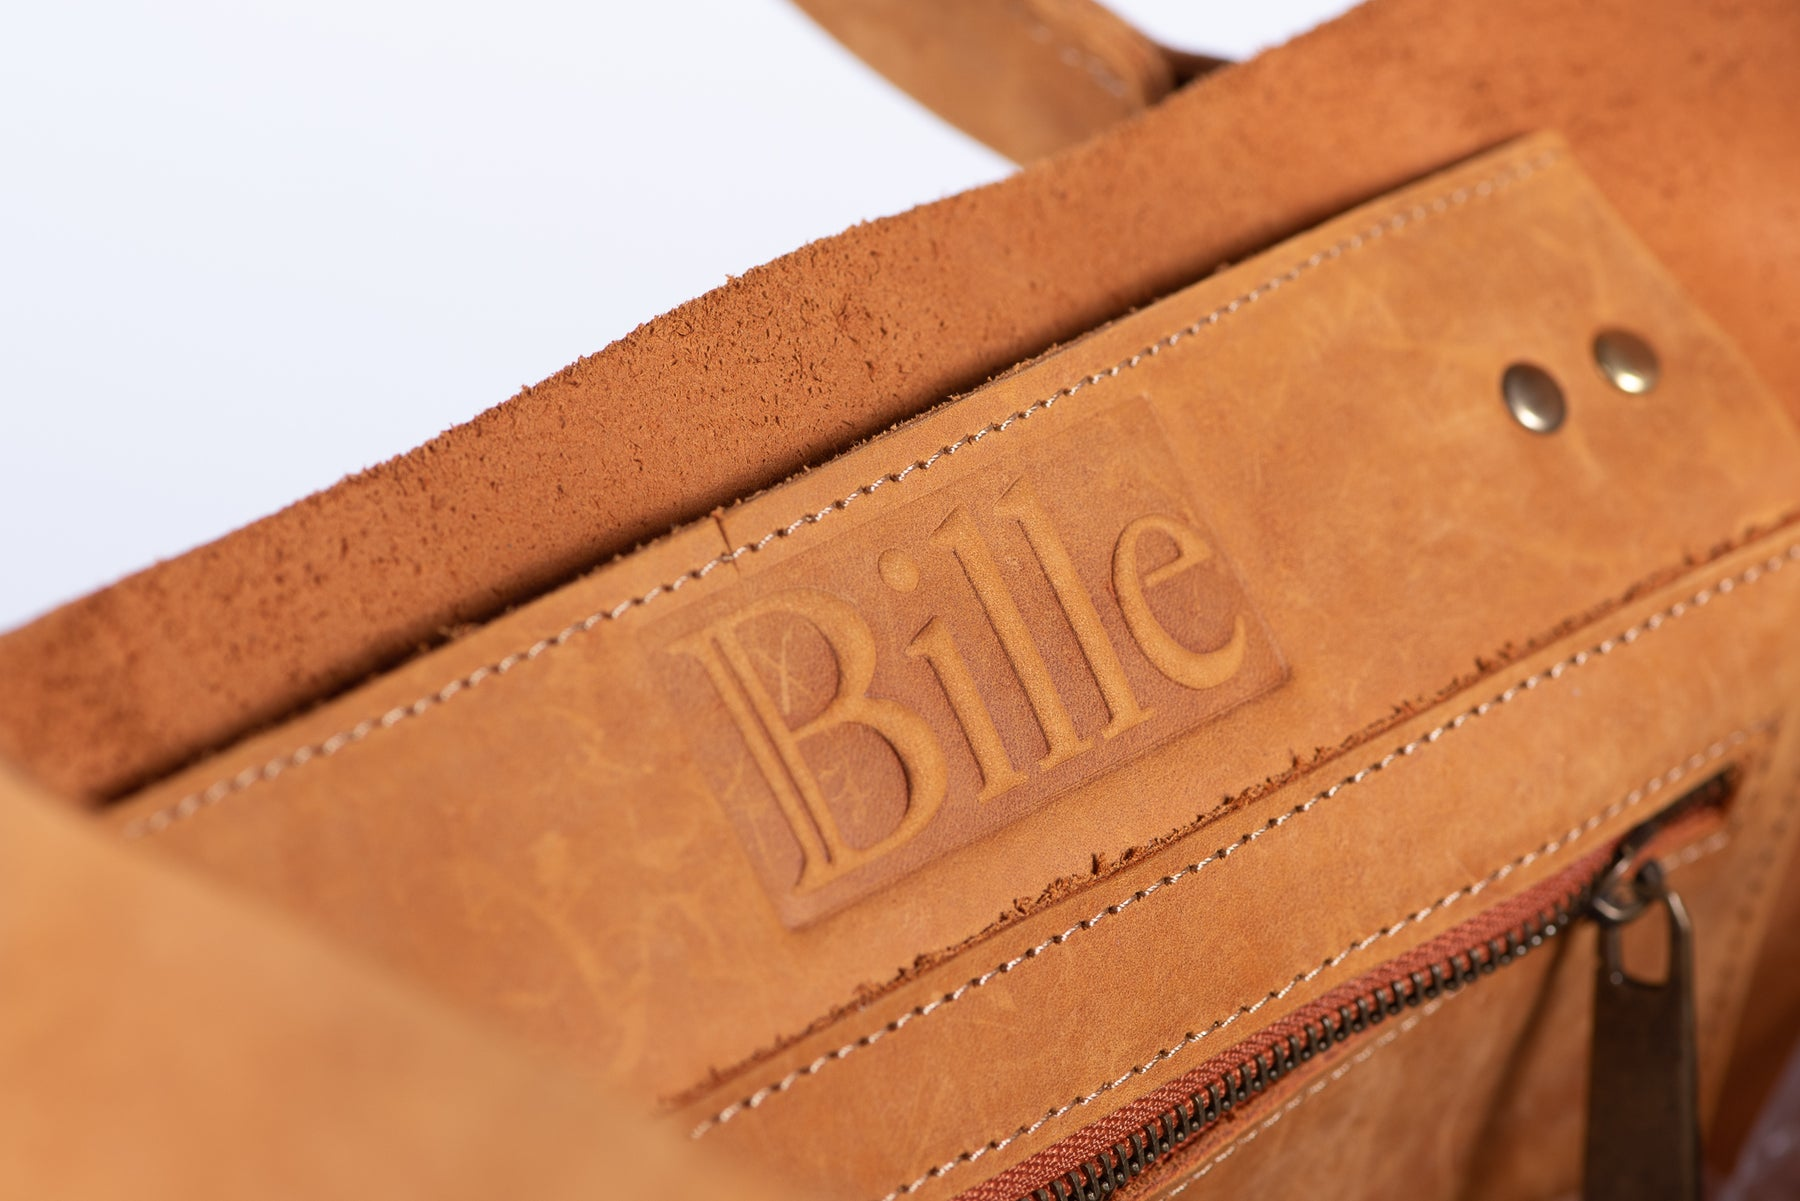 Beautiful leather with Bille logo